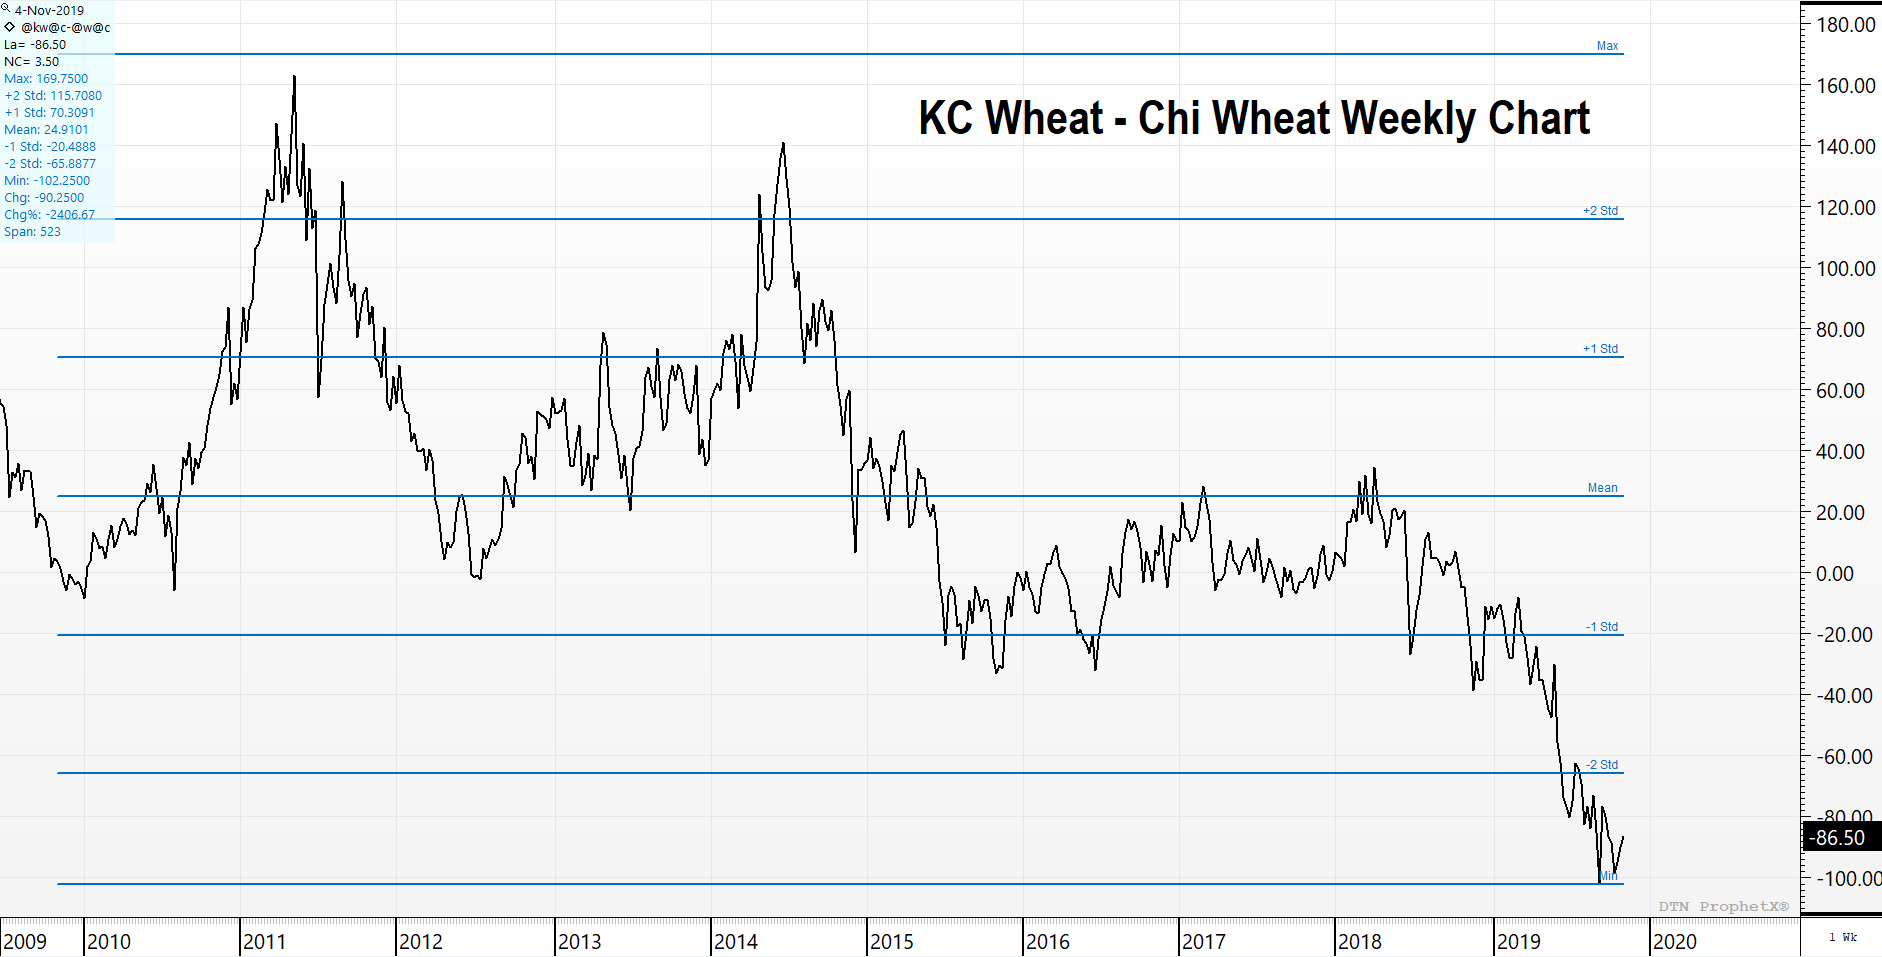 KC/Chicago Wheat Spread